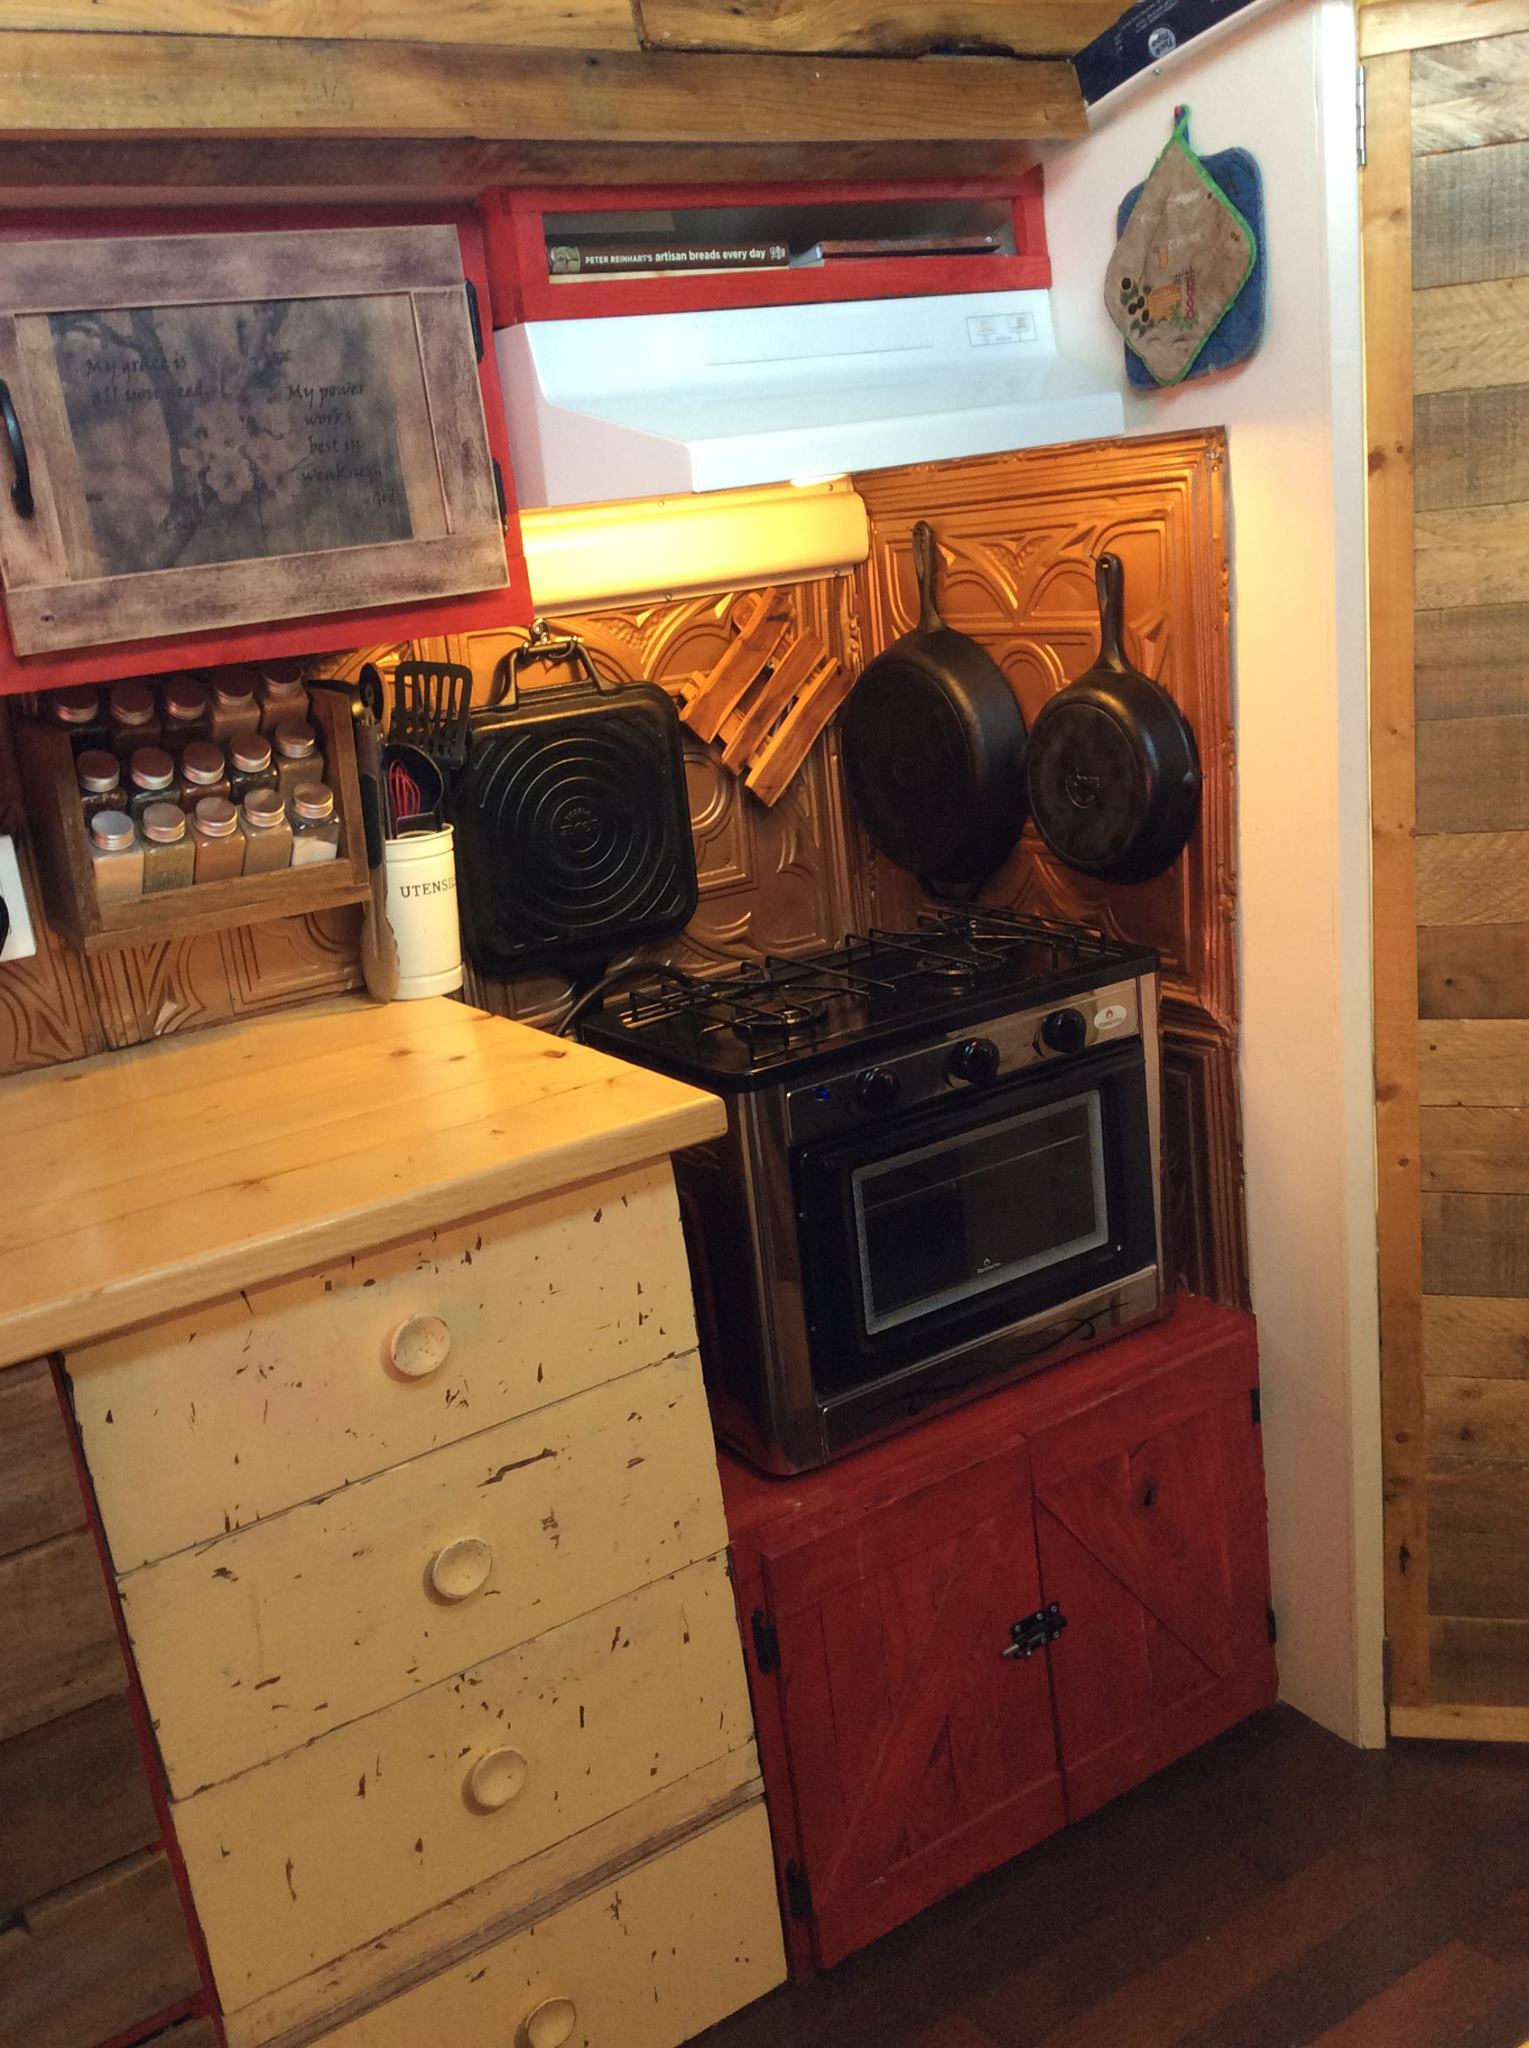 The kitchen nook! The backsplash is from old tin celling tiles and propane stove and oven we picked up from Home Hardware. Almost everything in our bus is repurposed and reused!